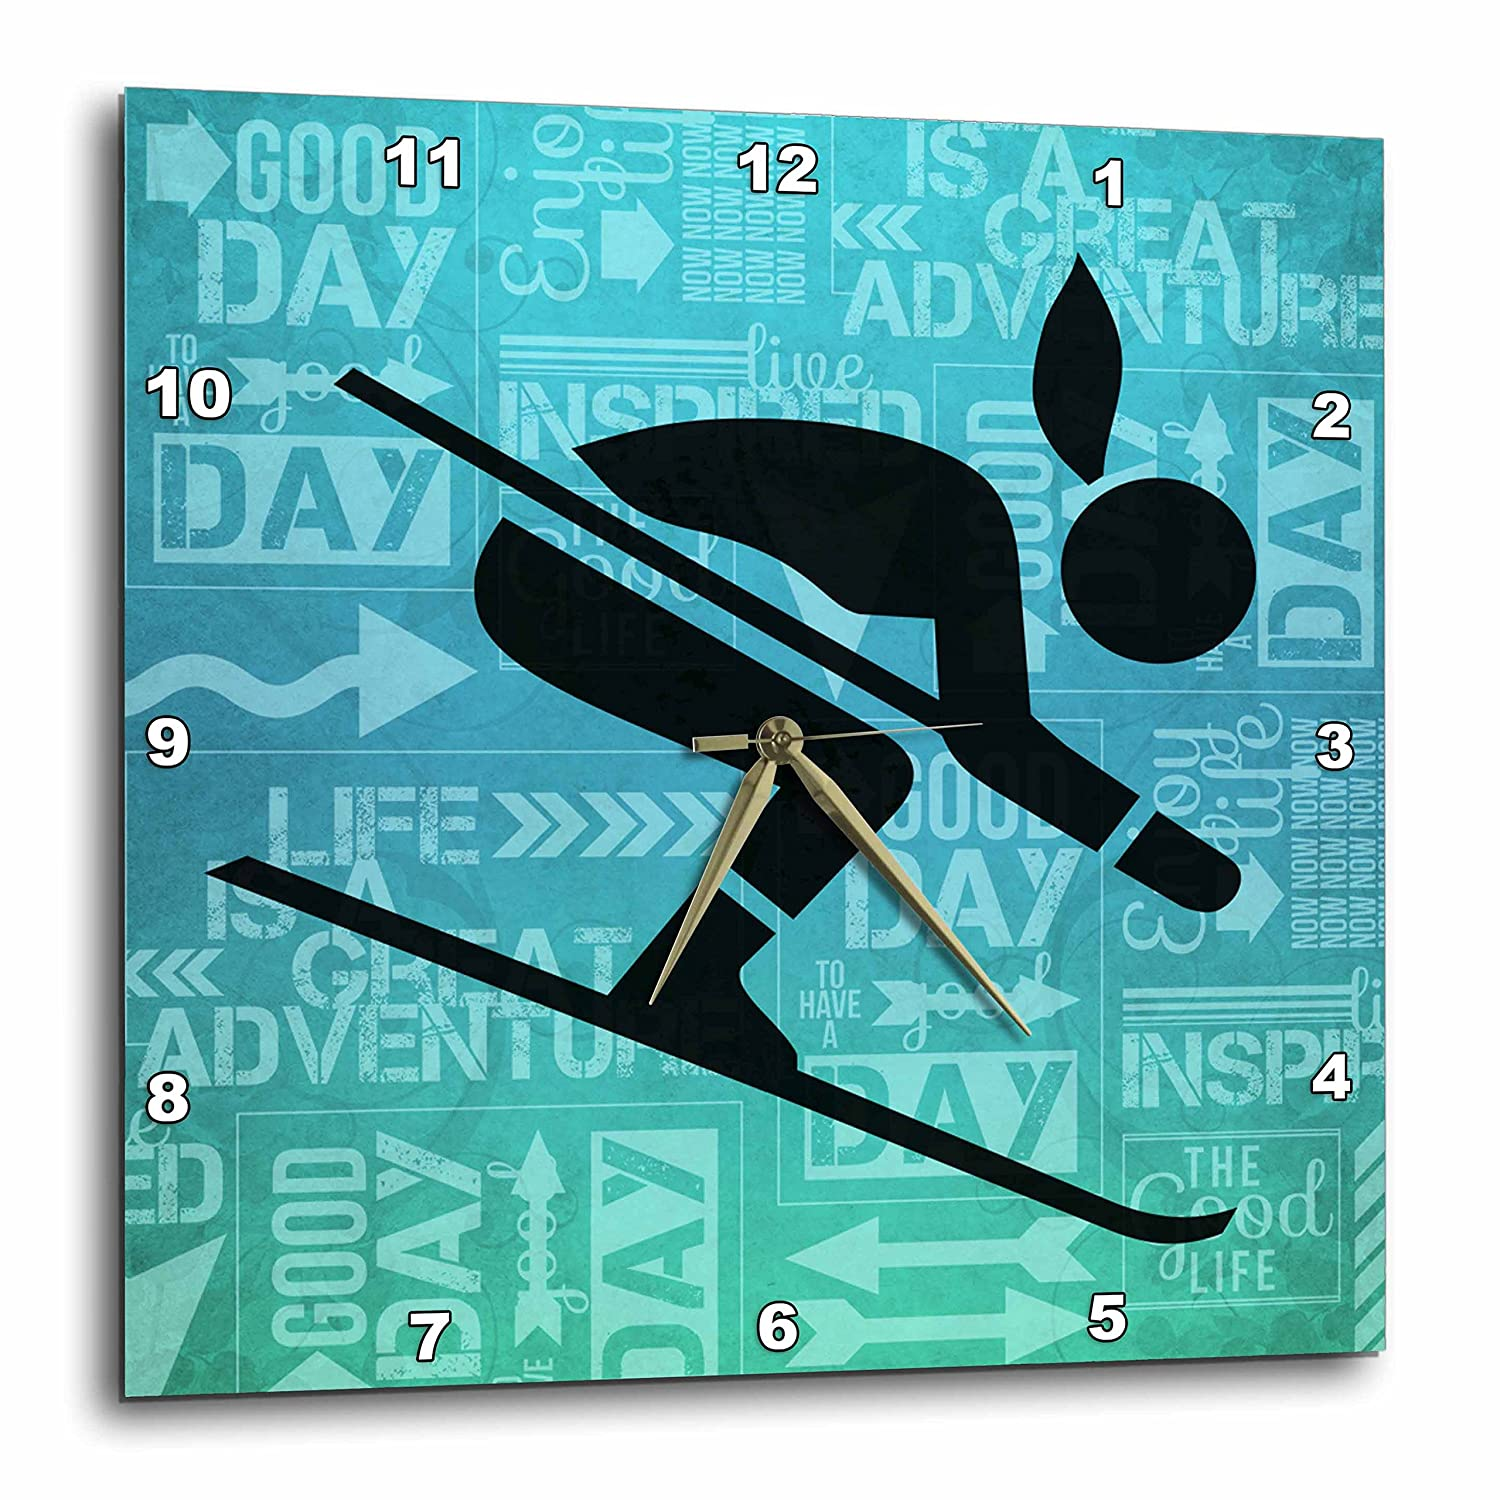 13 by 13-Inch 3dRose DPP/_173213/_2 Downhill Skier Silhouettein Blue Hues with Adventure Word Art Wall Clock